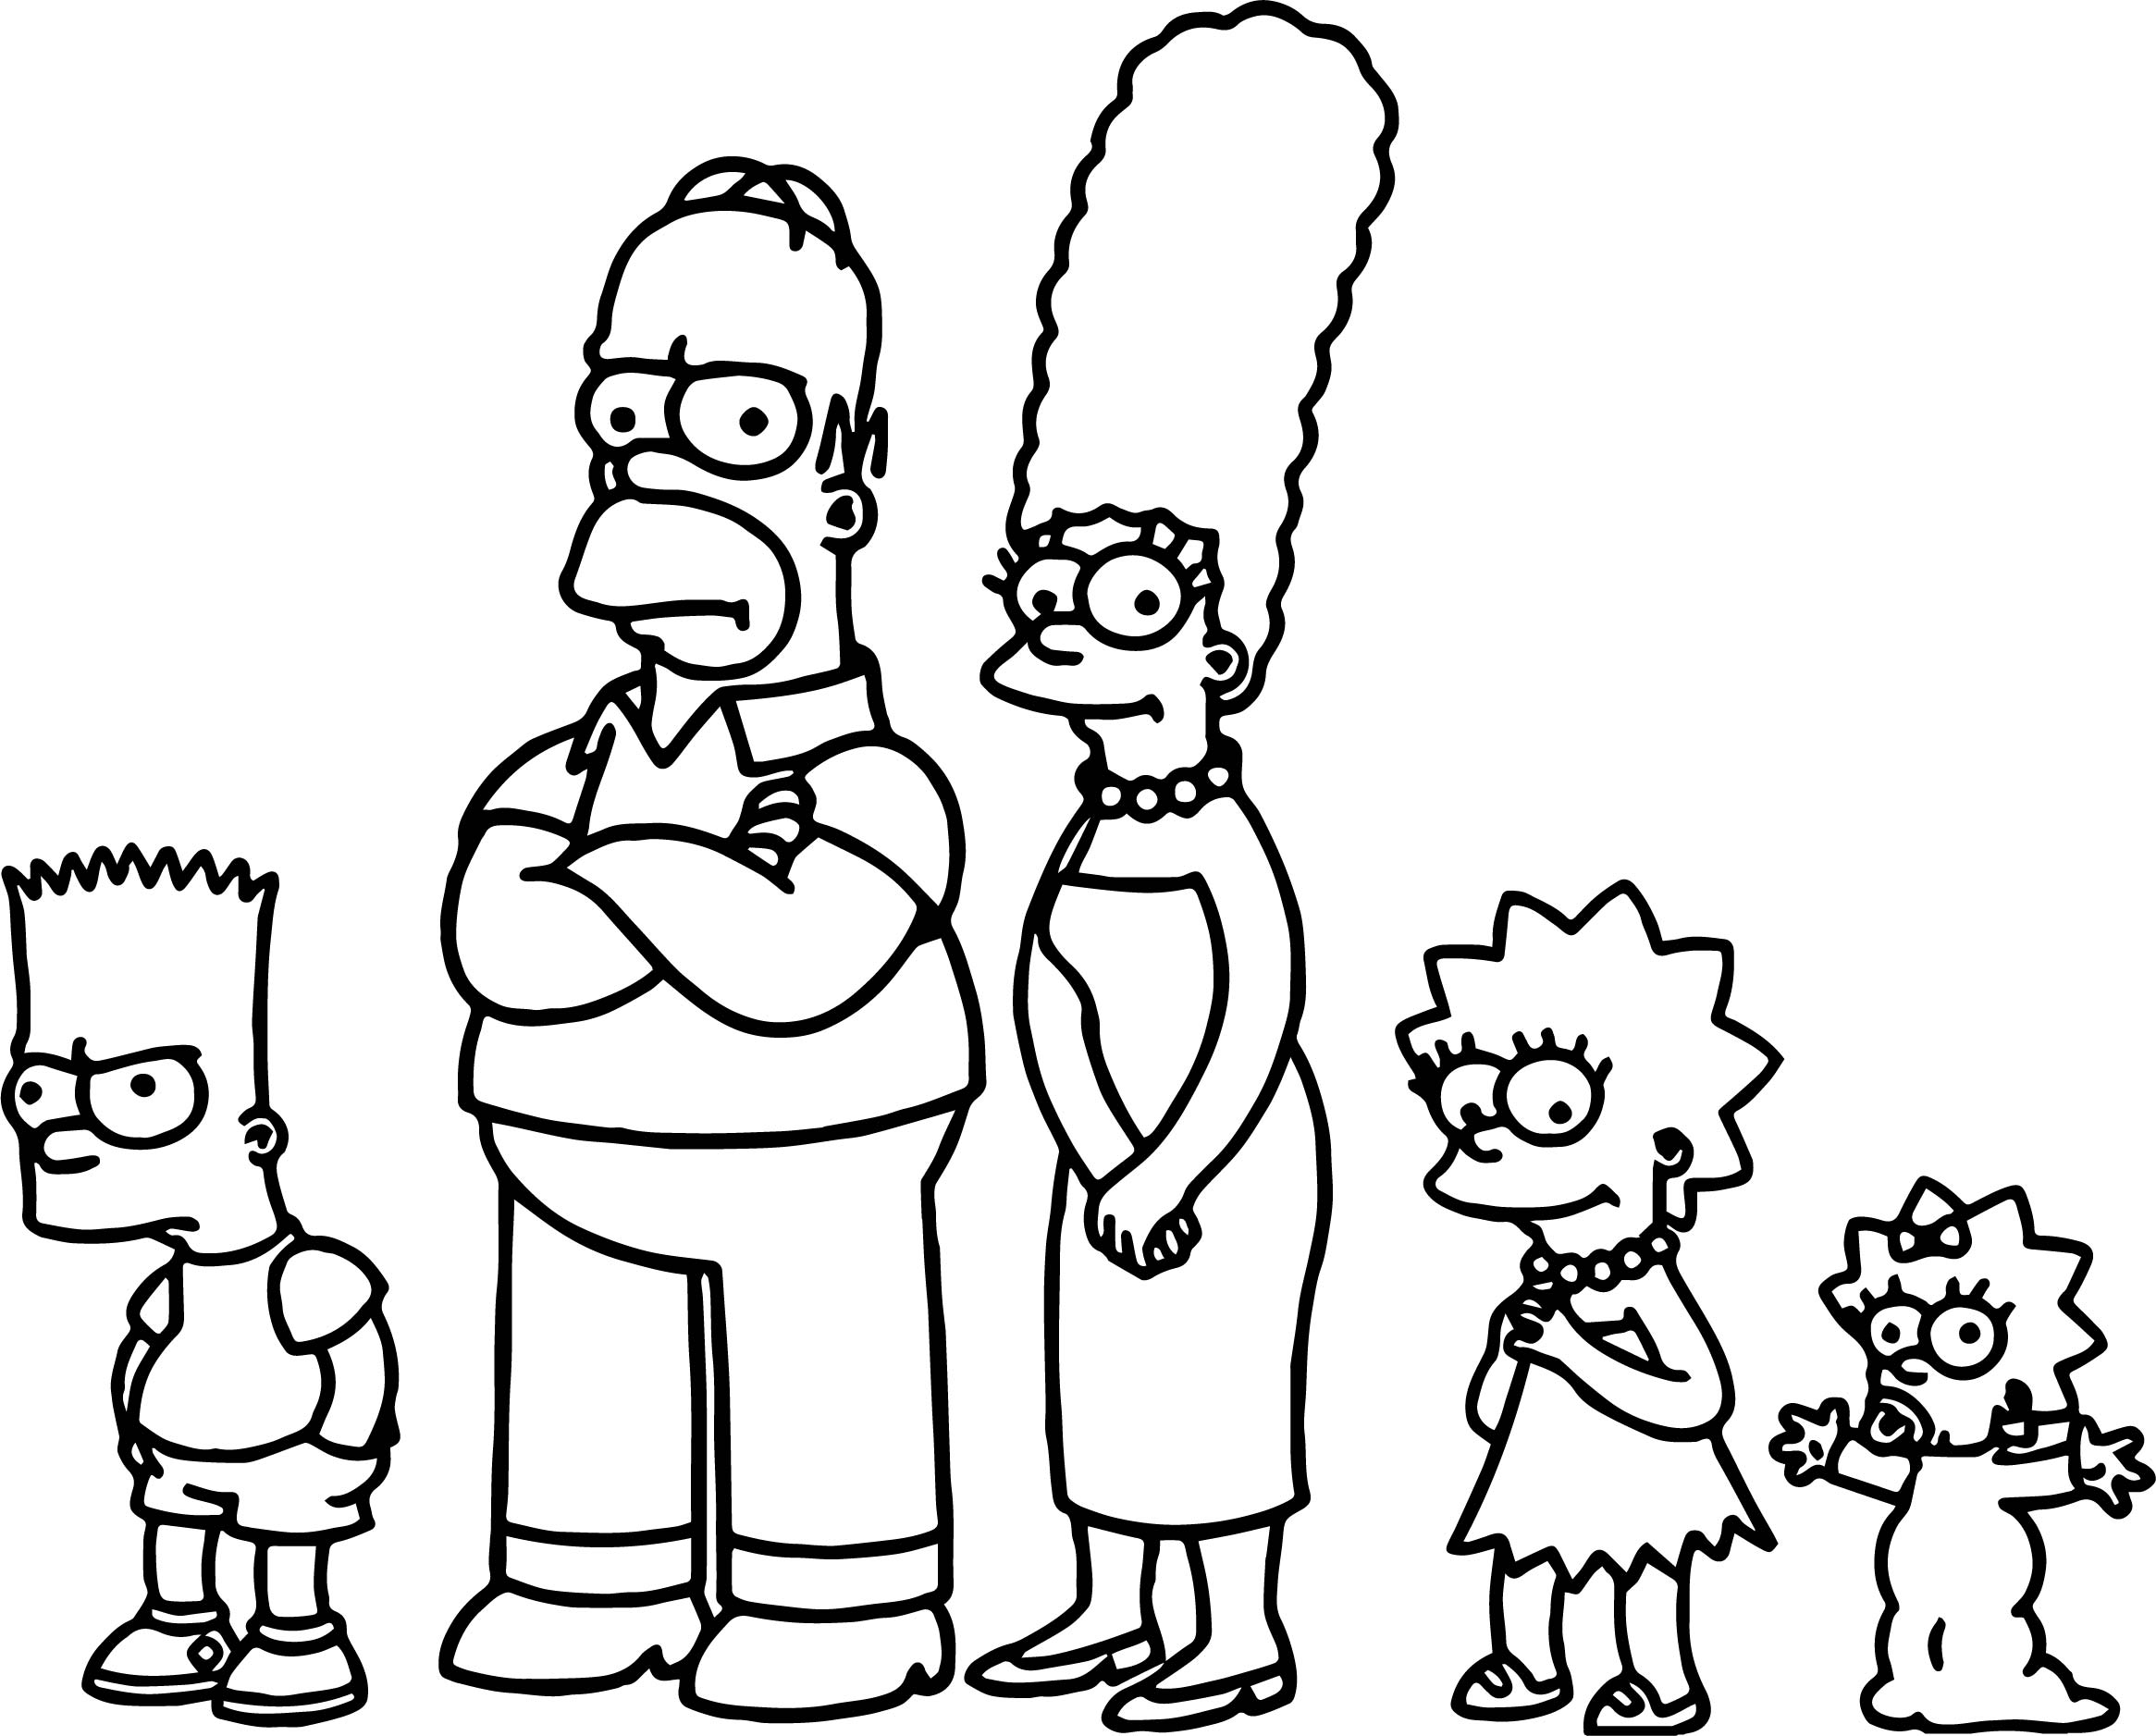 Watch the simpsons still really hates fox news coloring for Coloring pages simpsons